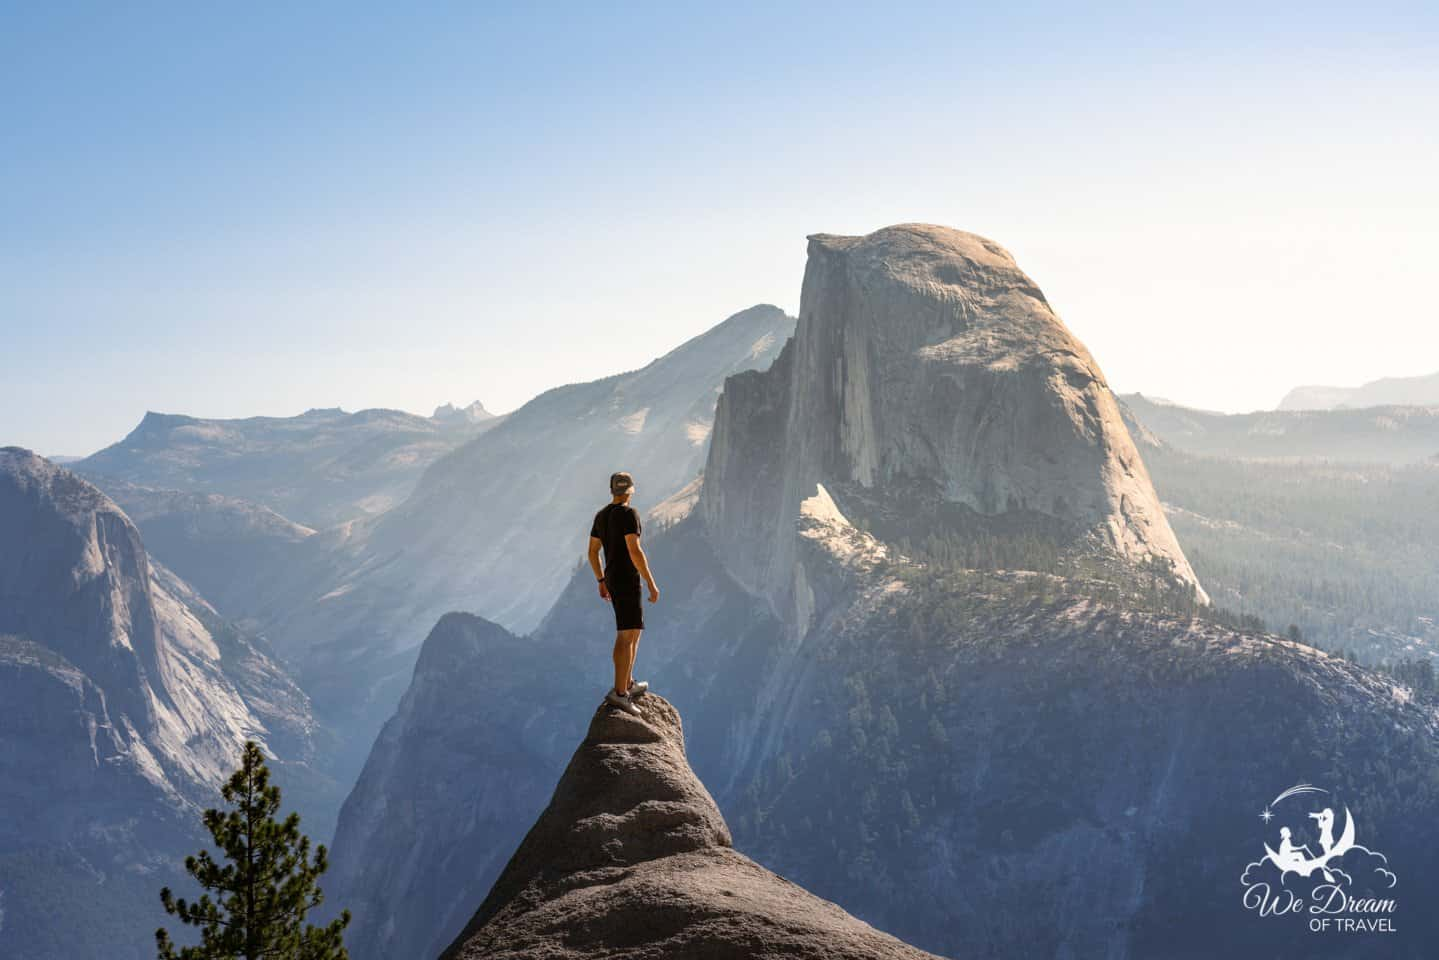 Day 2 of the Yosemite itinerary focuses on the breathtaking views along Glacier Point road.